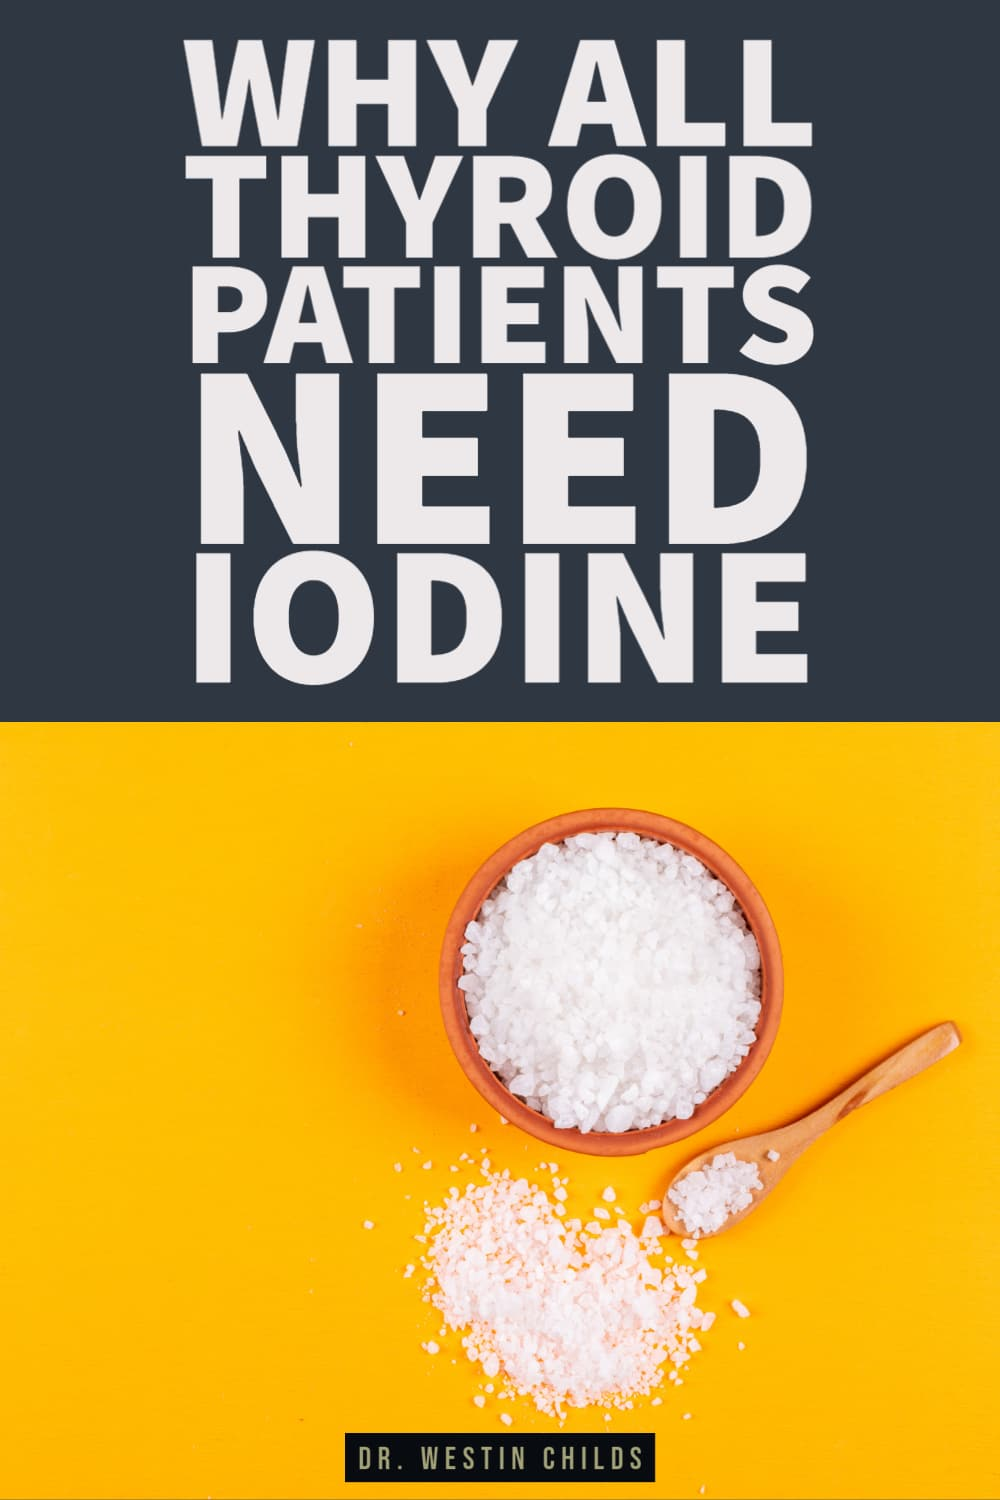 why all thyroid patients need iodine